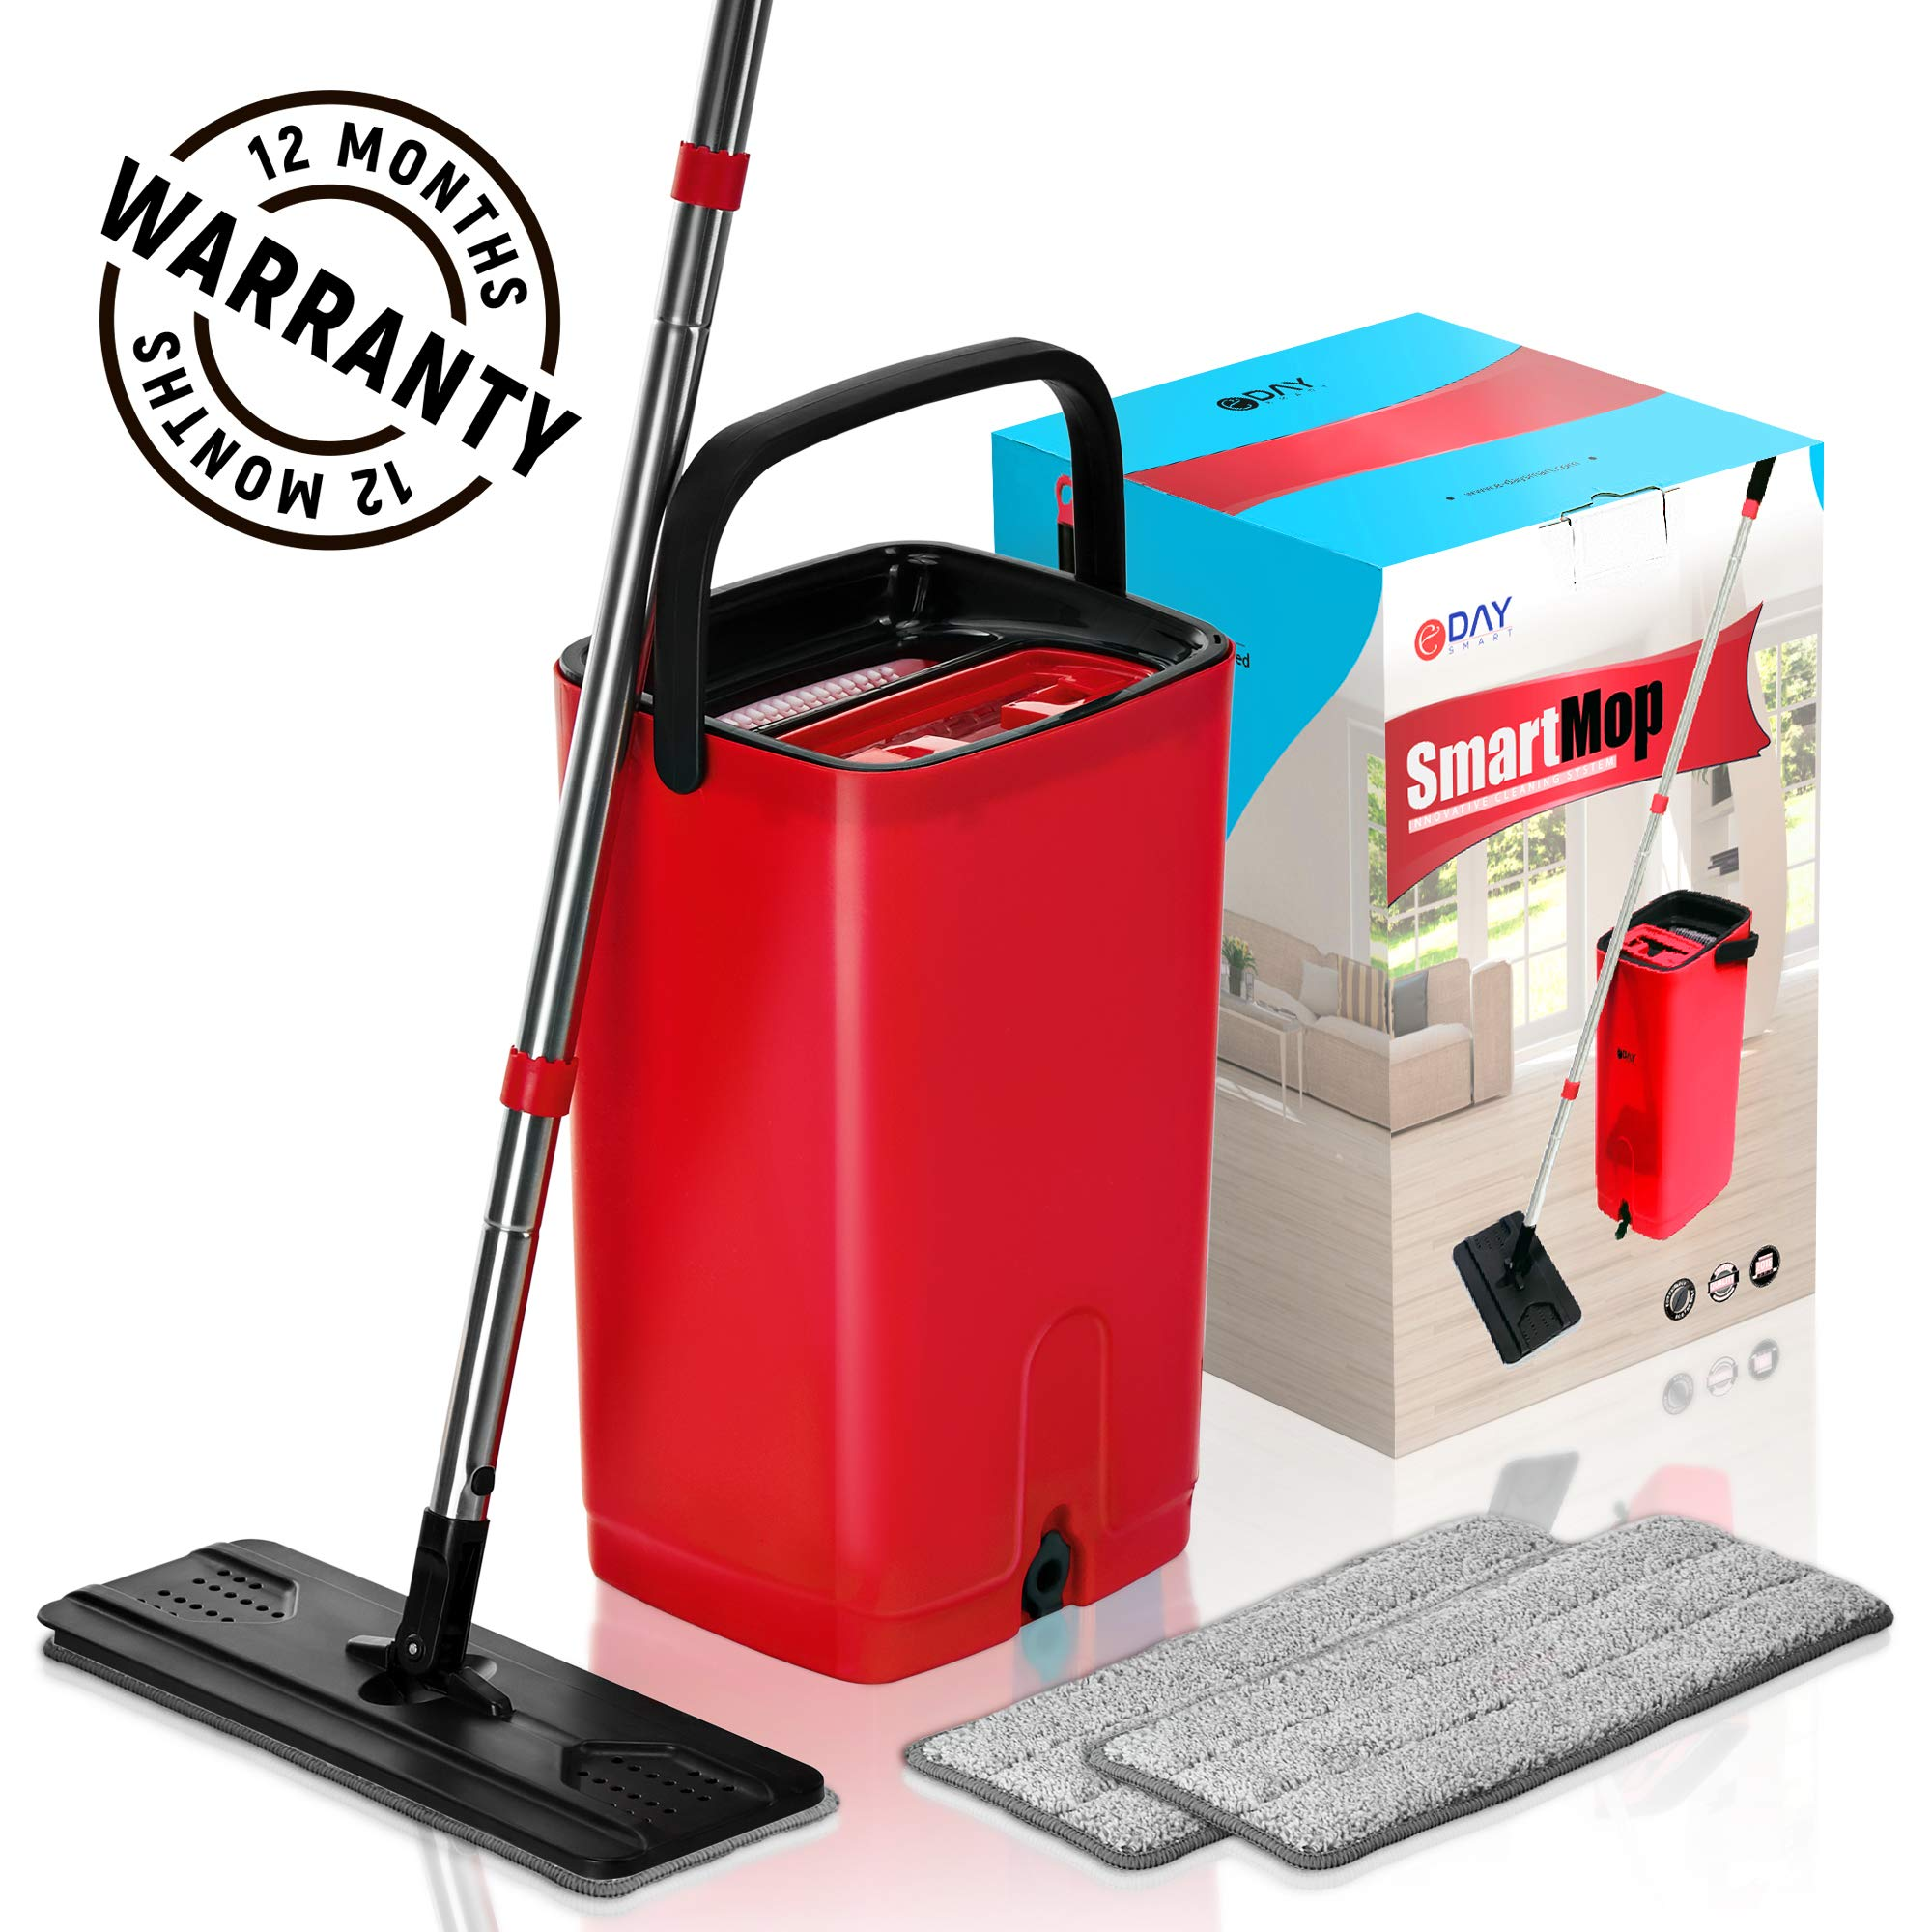 E-Day Smart Flat Mop Bucket with Wringer for Home Kitchen Floor Cleaning - Microfiber Mop System with Bucket and 2 Washable Mop Pads - Dry or Wet Floor Mop Set with Self-Cleaning System - Red by E-Day Smart (Image #1)